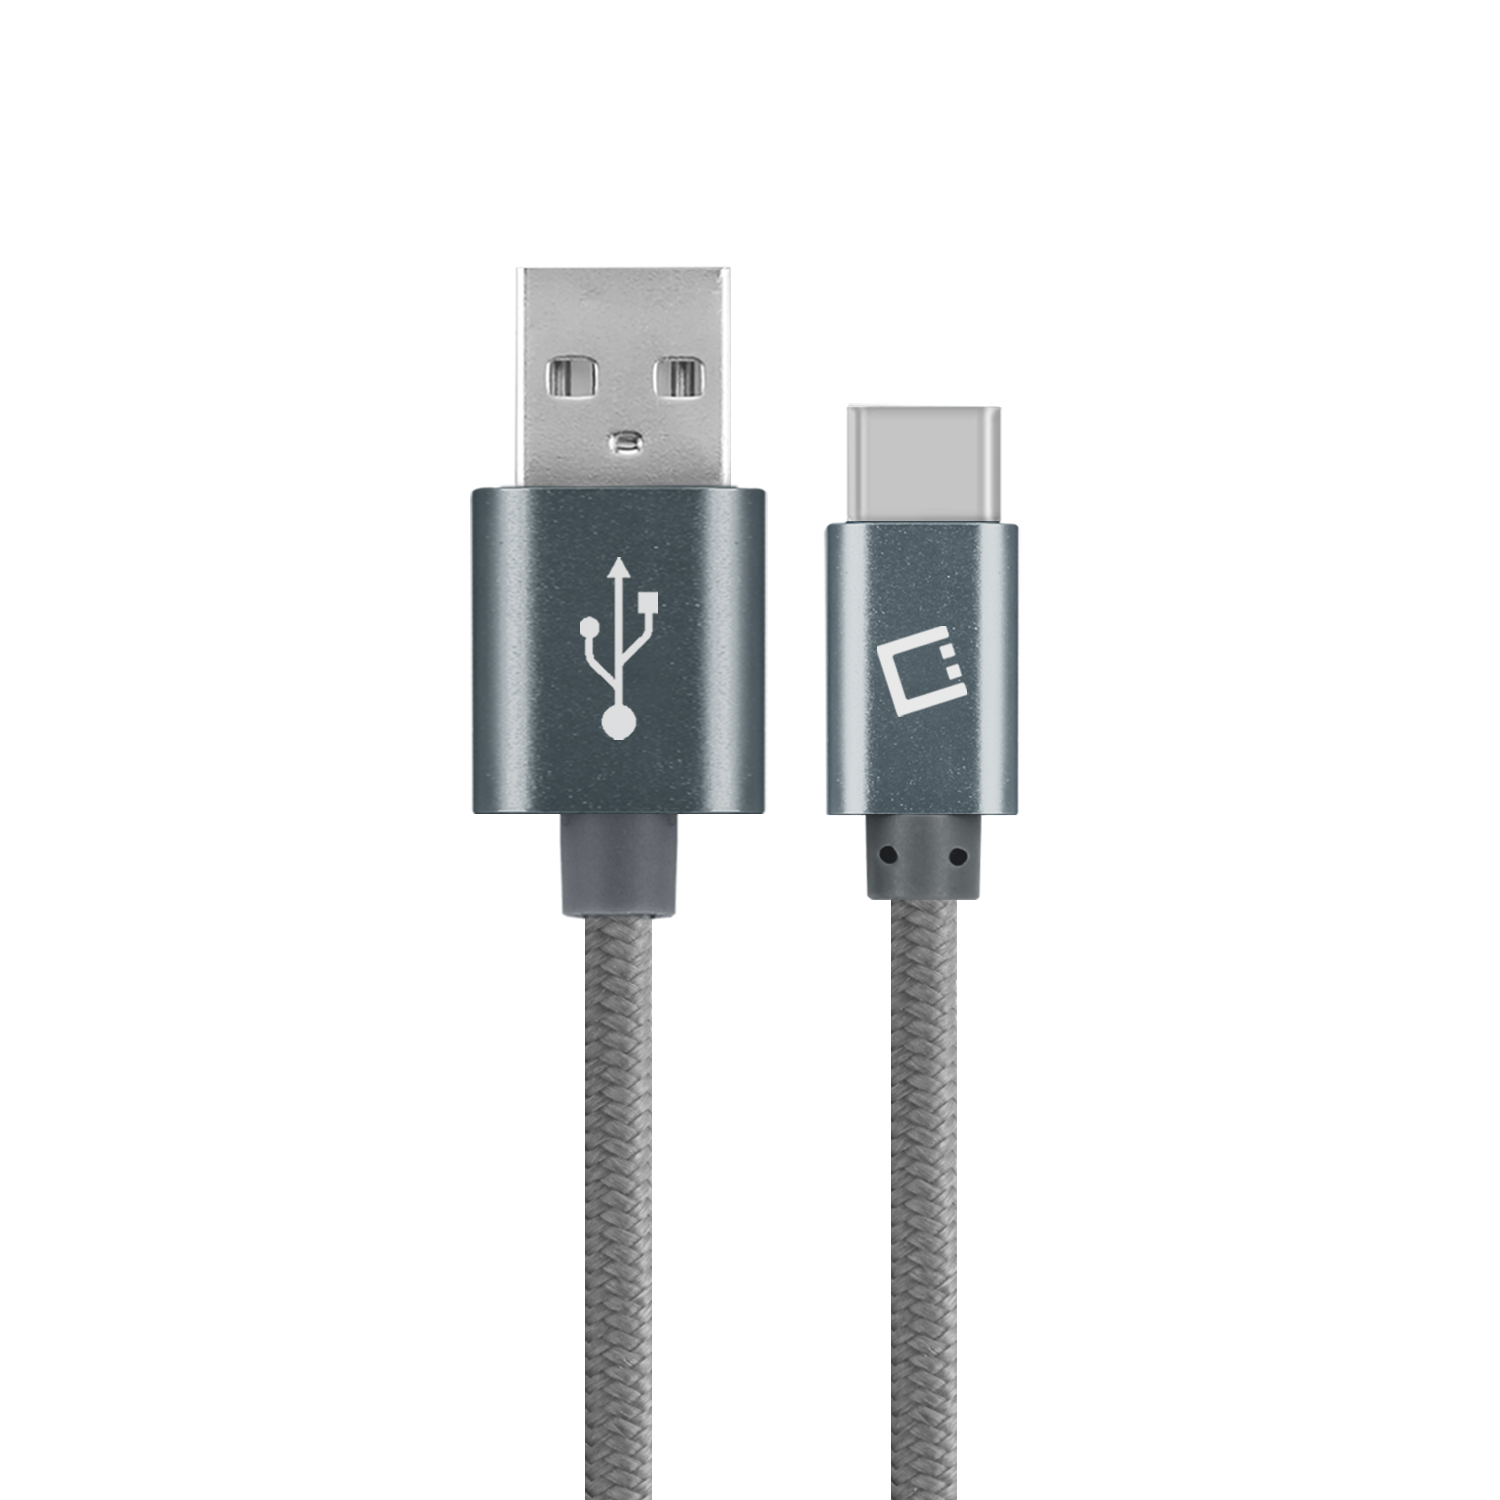 Blackberry KEYone USB Type-C To Type-A Braided Data Power Cable Grey 10ft Braided